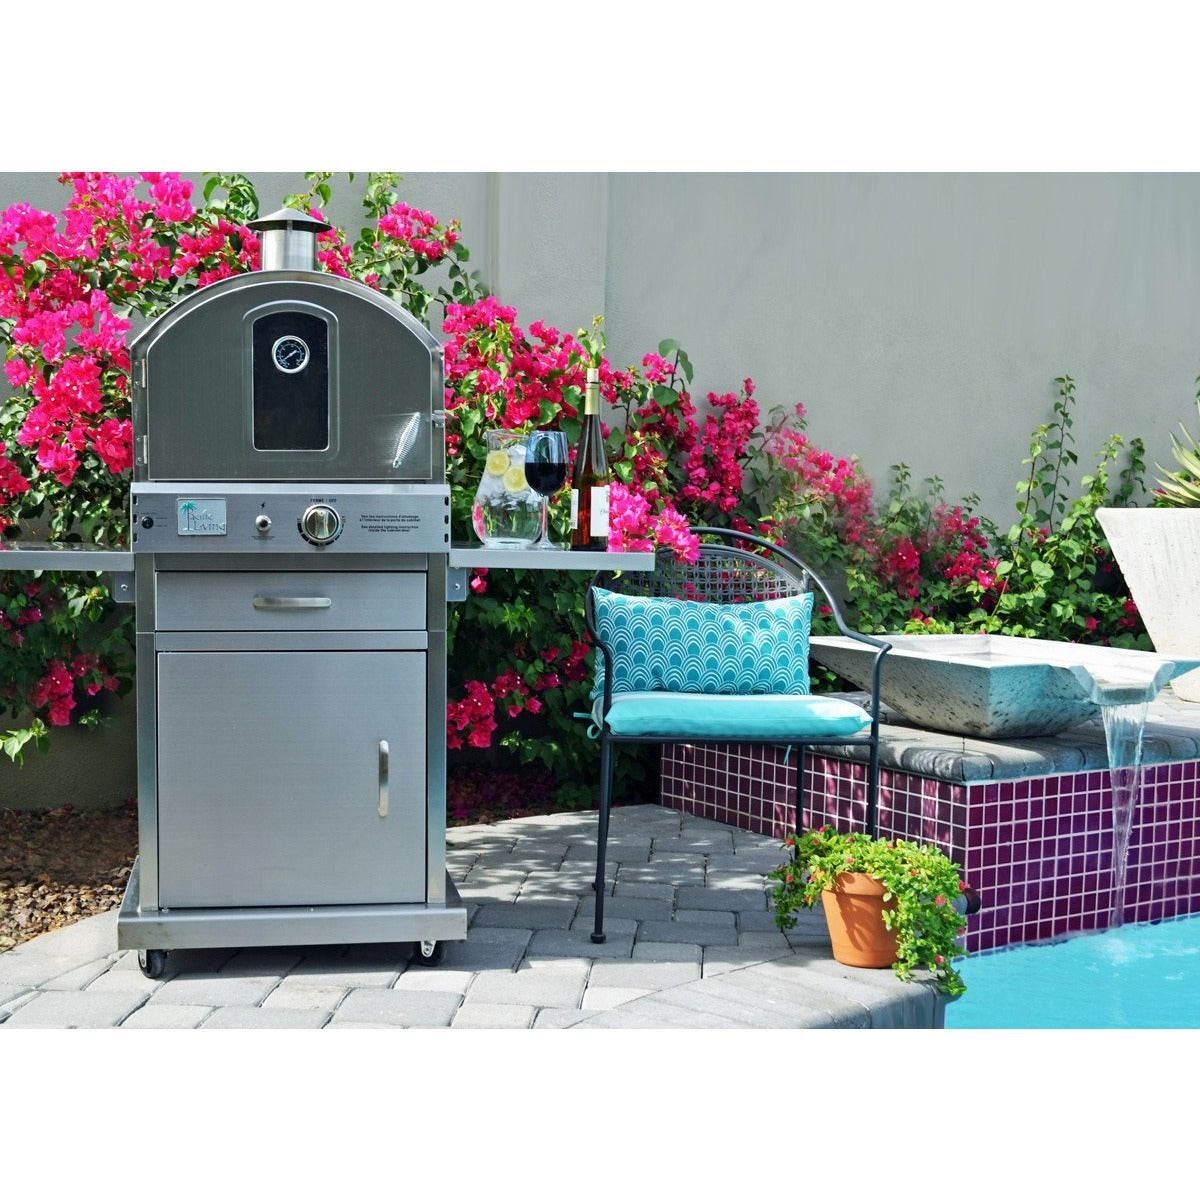 Pacific Living Outdoor Oven SKU PFL-PL8430SSBG070 | M&KGrills